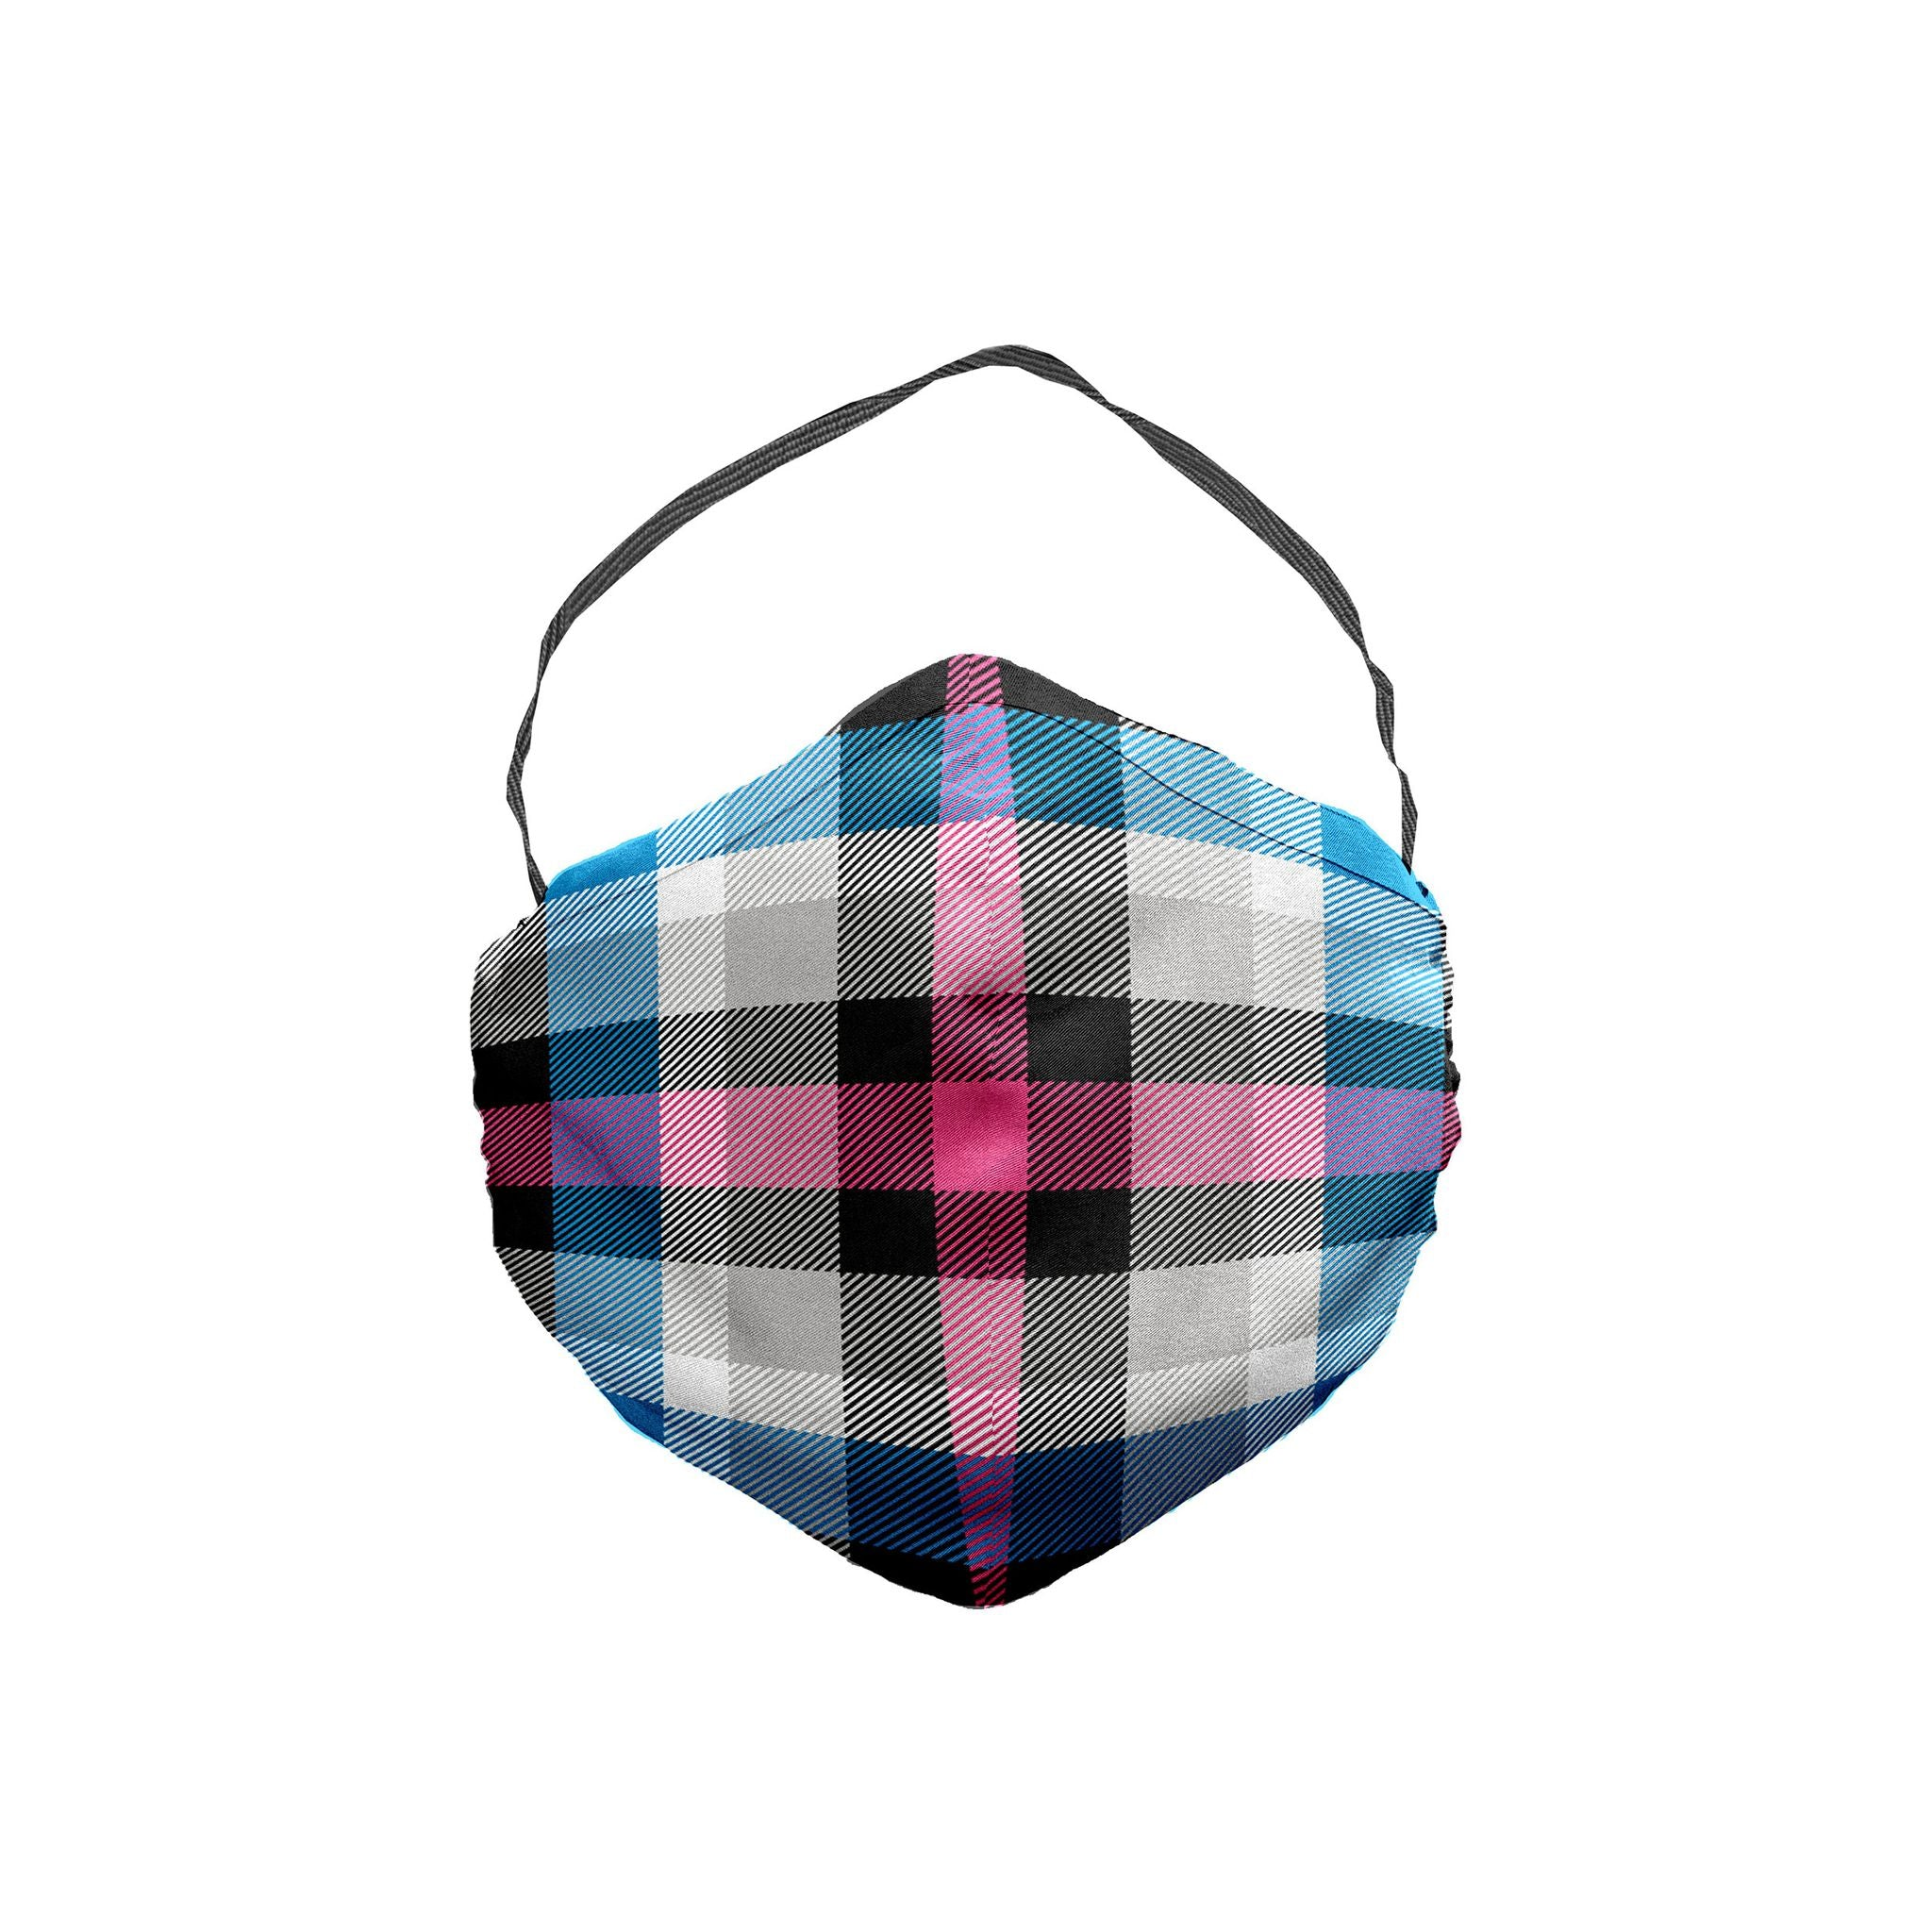 The Age of Consent Plaid Face Mask 5 Pack